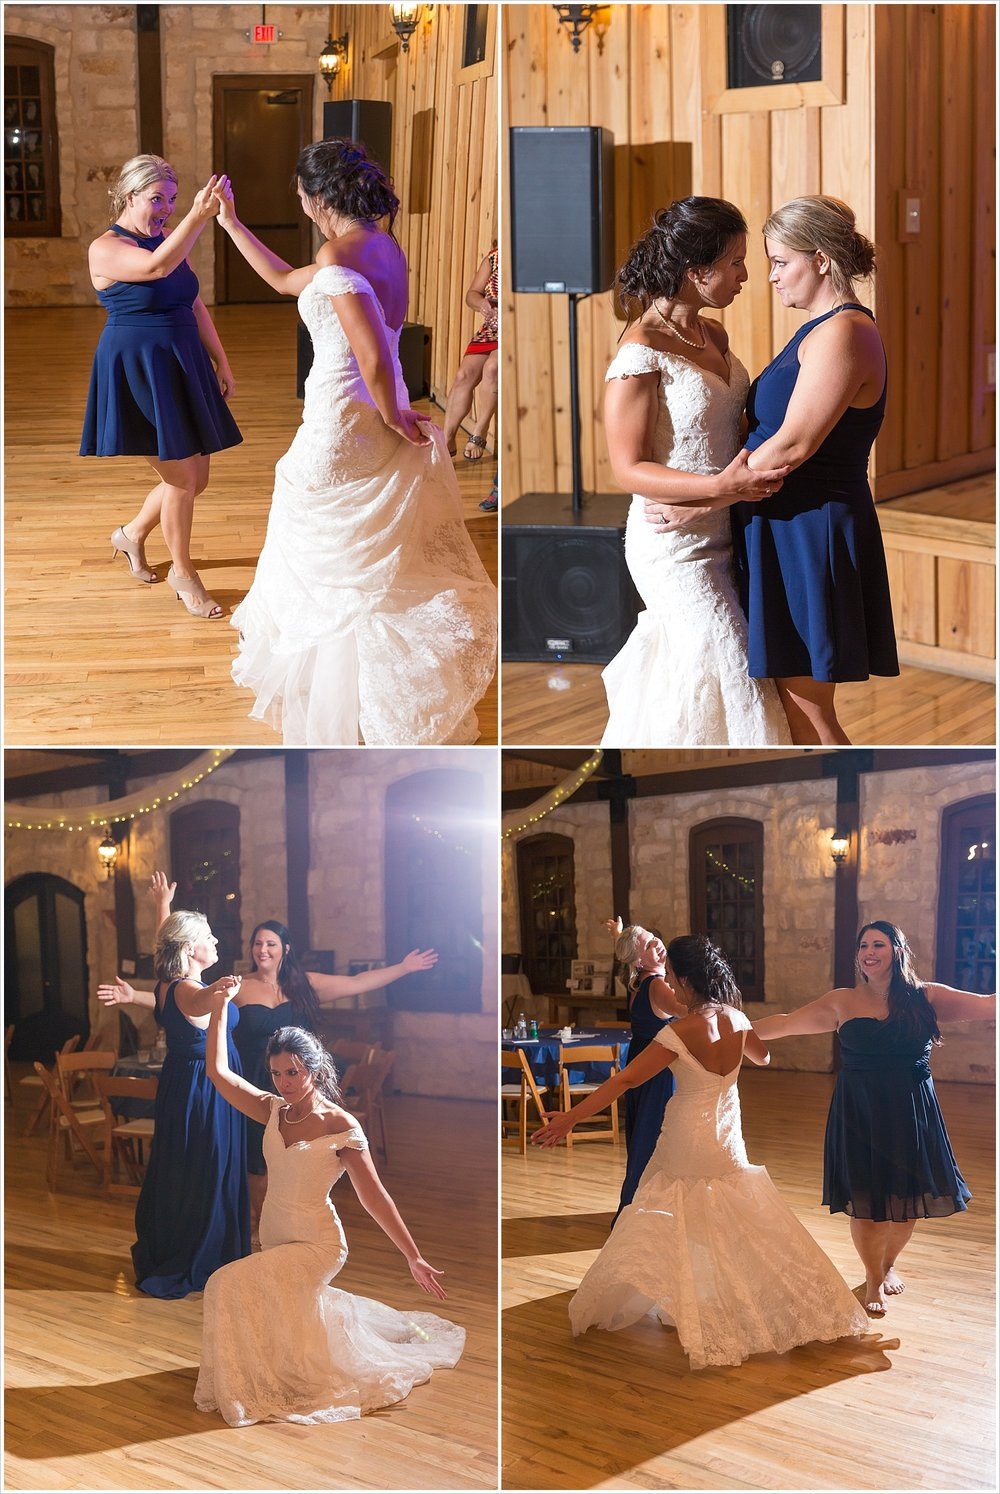 Bride dances with bridesmaids, Guests dancing during the reception, summer blush and navy wedding at Stone Hall at The Springs in McKinney, Texas, Jason & Melaina Photography, www.jasonandmelaina.com